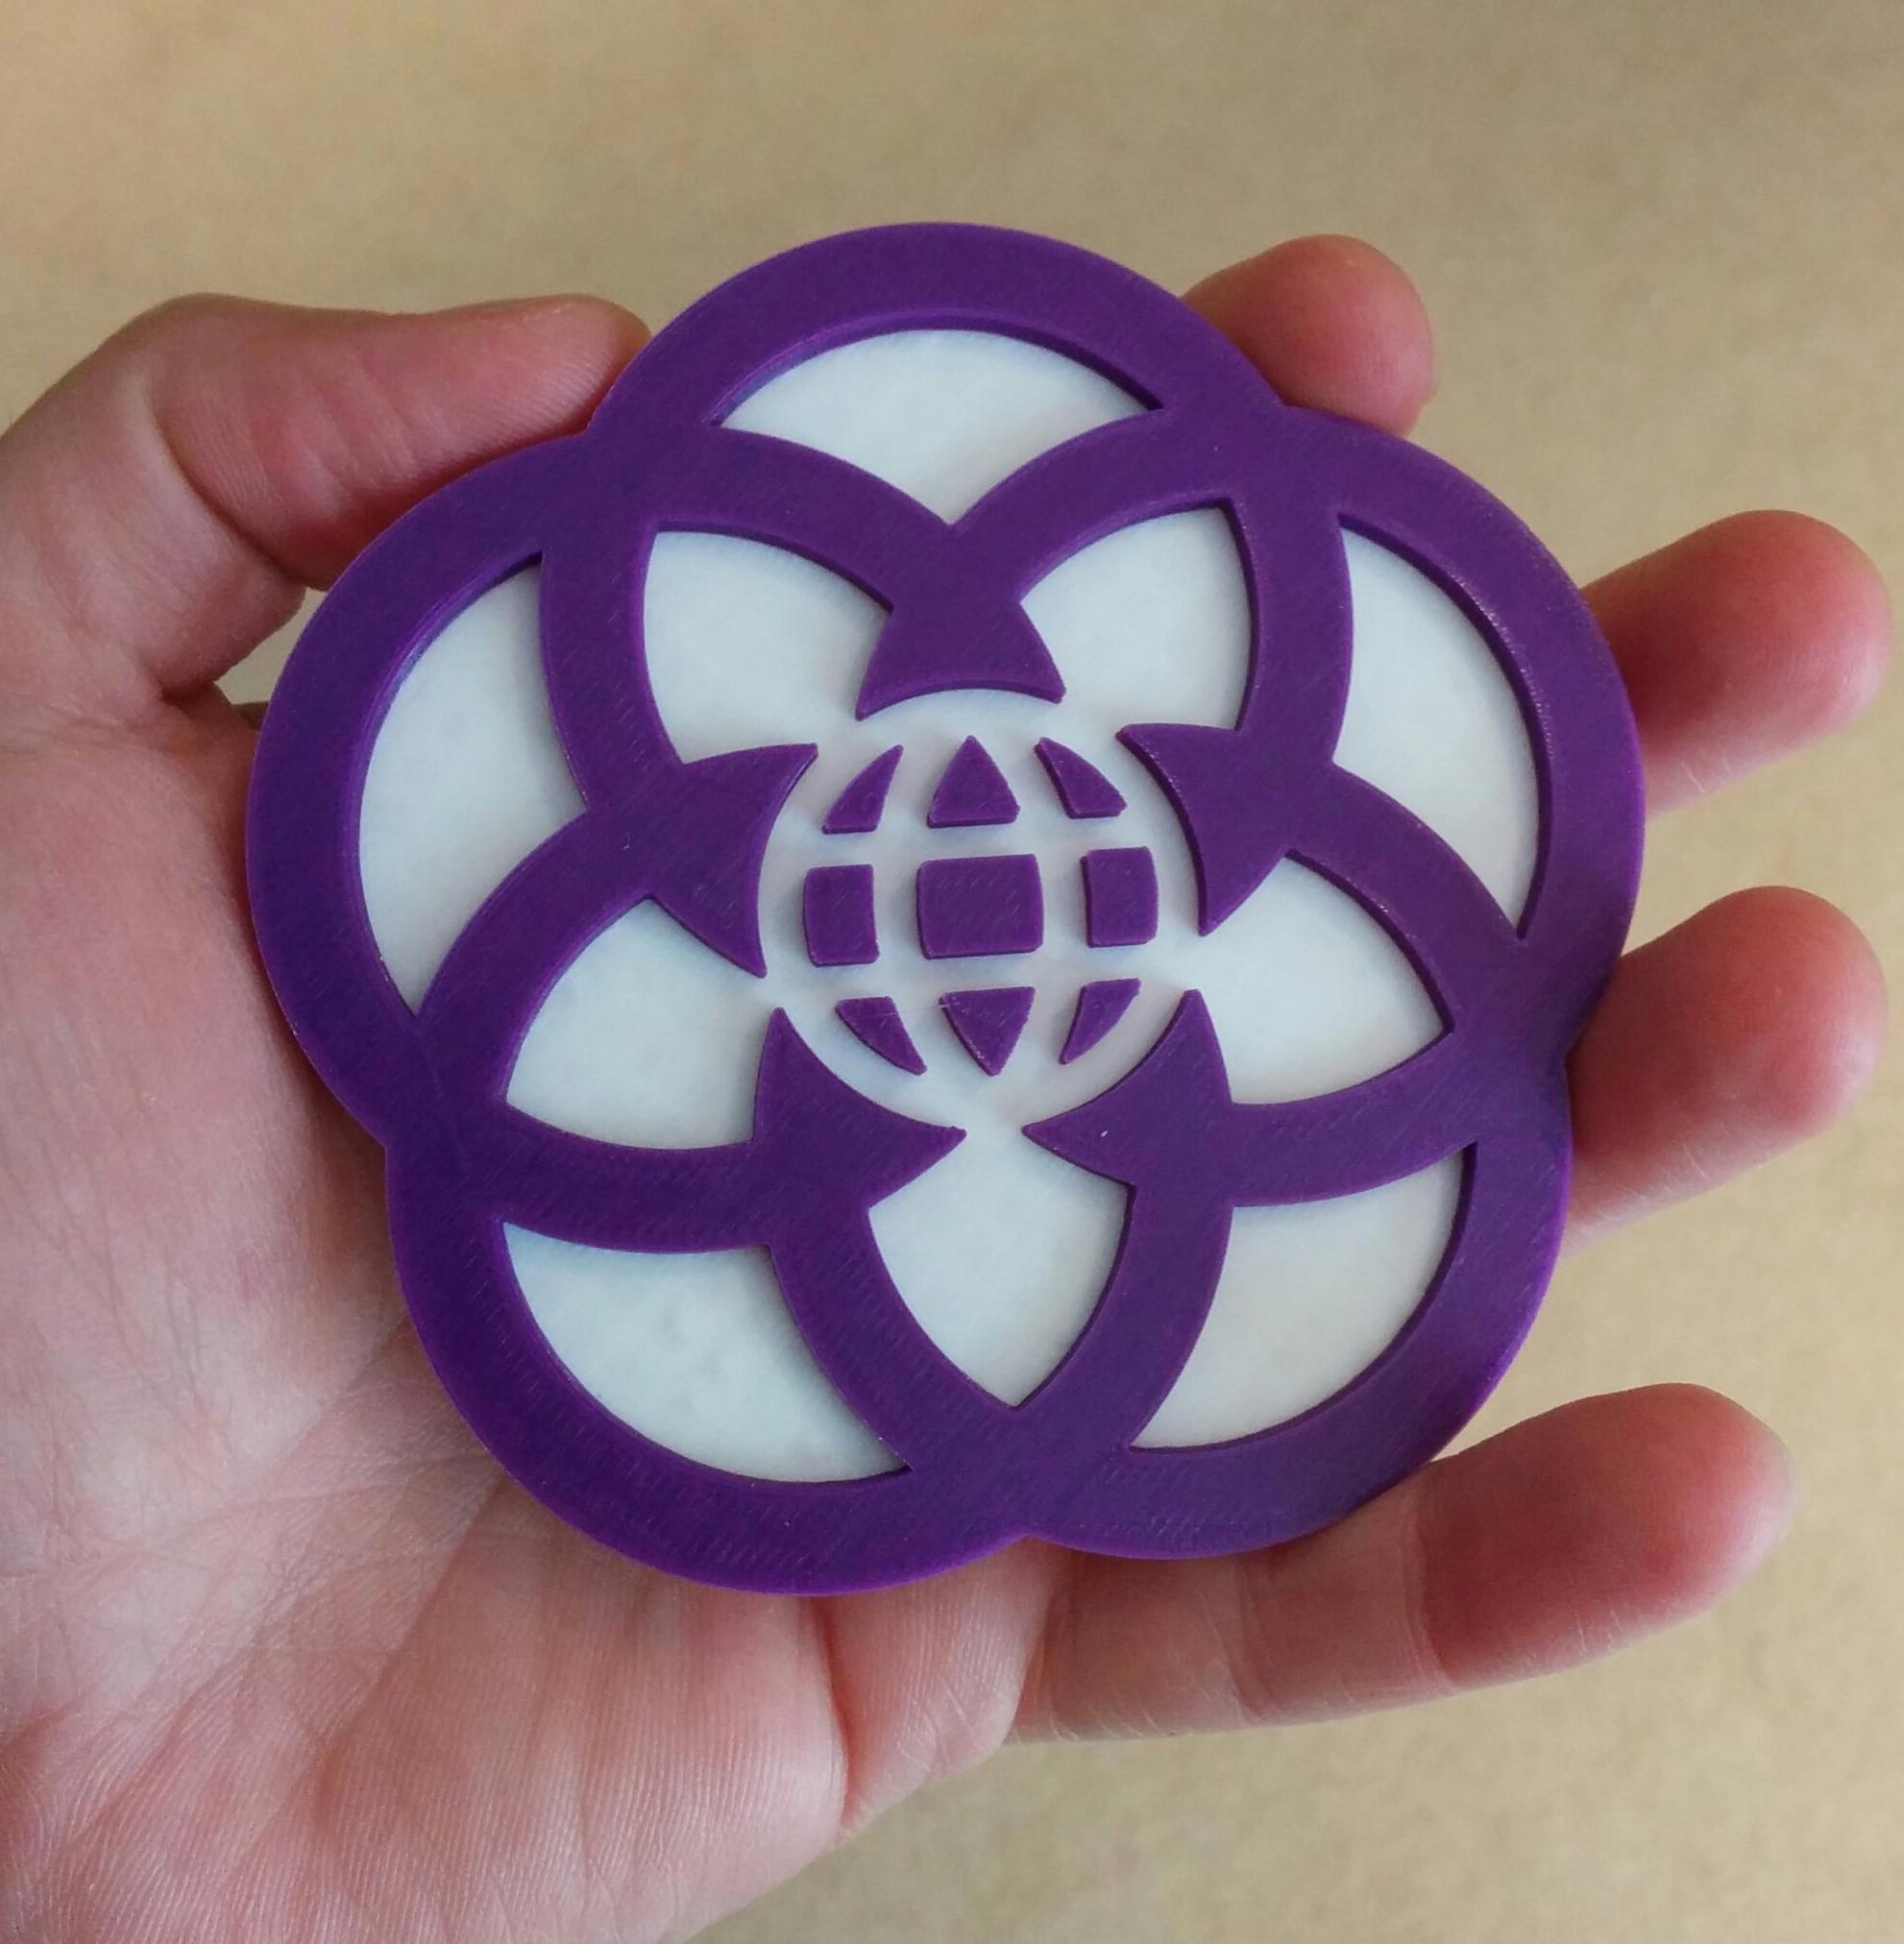 In honor of #D23Expo One random person who retweets this will get this EPCOT Center 3D printed coaster! Last Chance! http://t.co/ttDxAq26L6